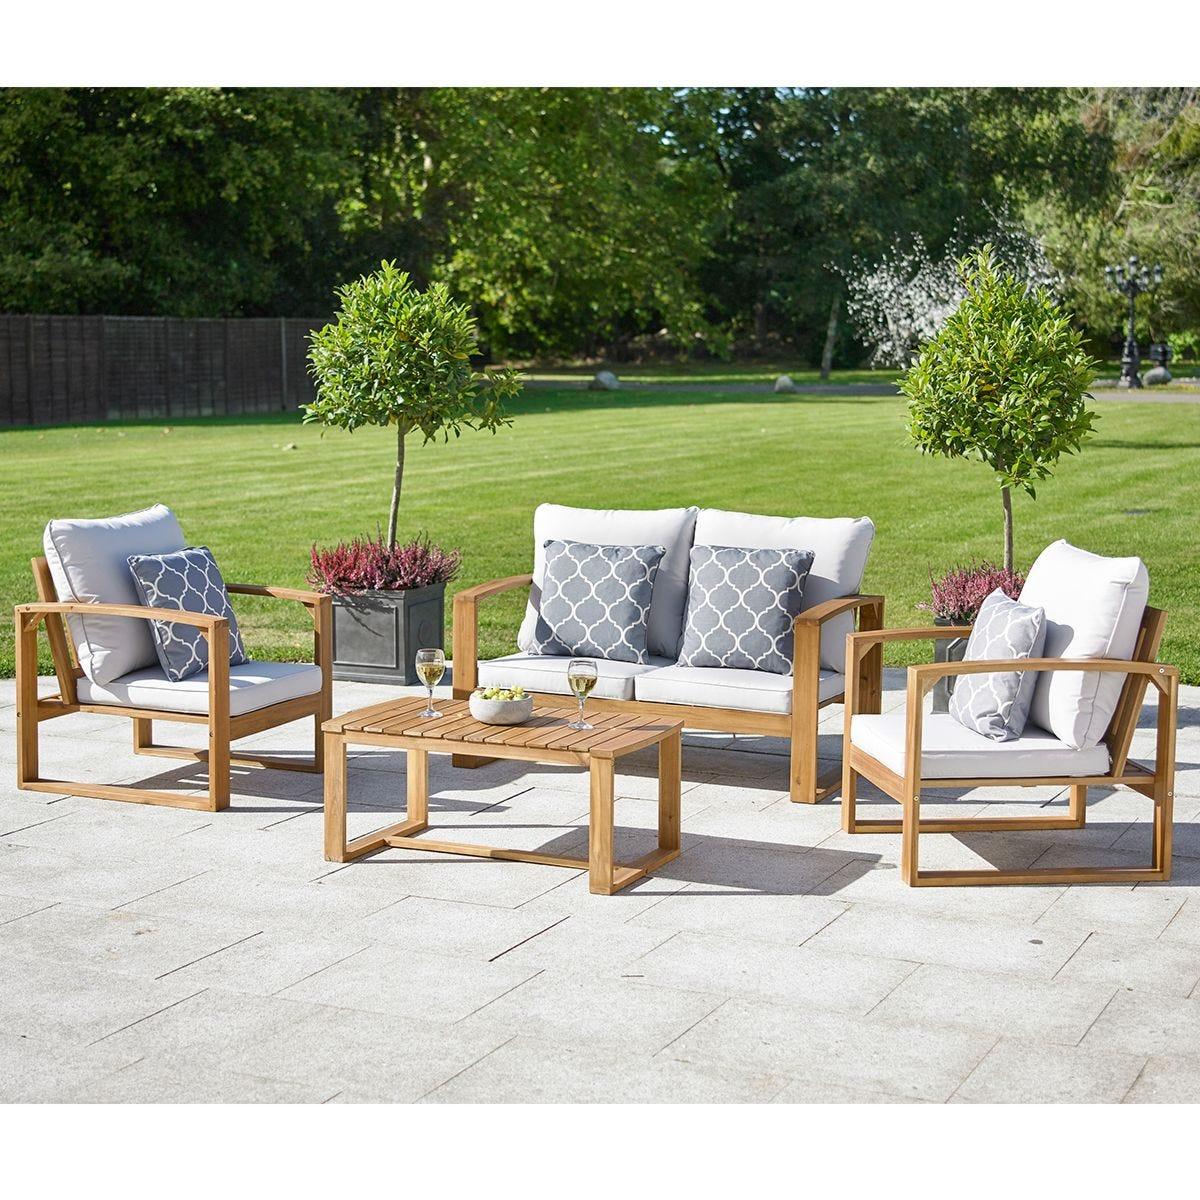 Greenhurst 4 Piece Rochester Hardwood Sofa Set with Cushions - Natural